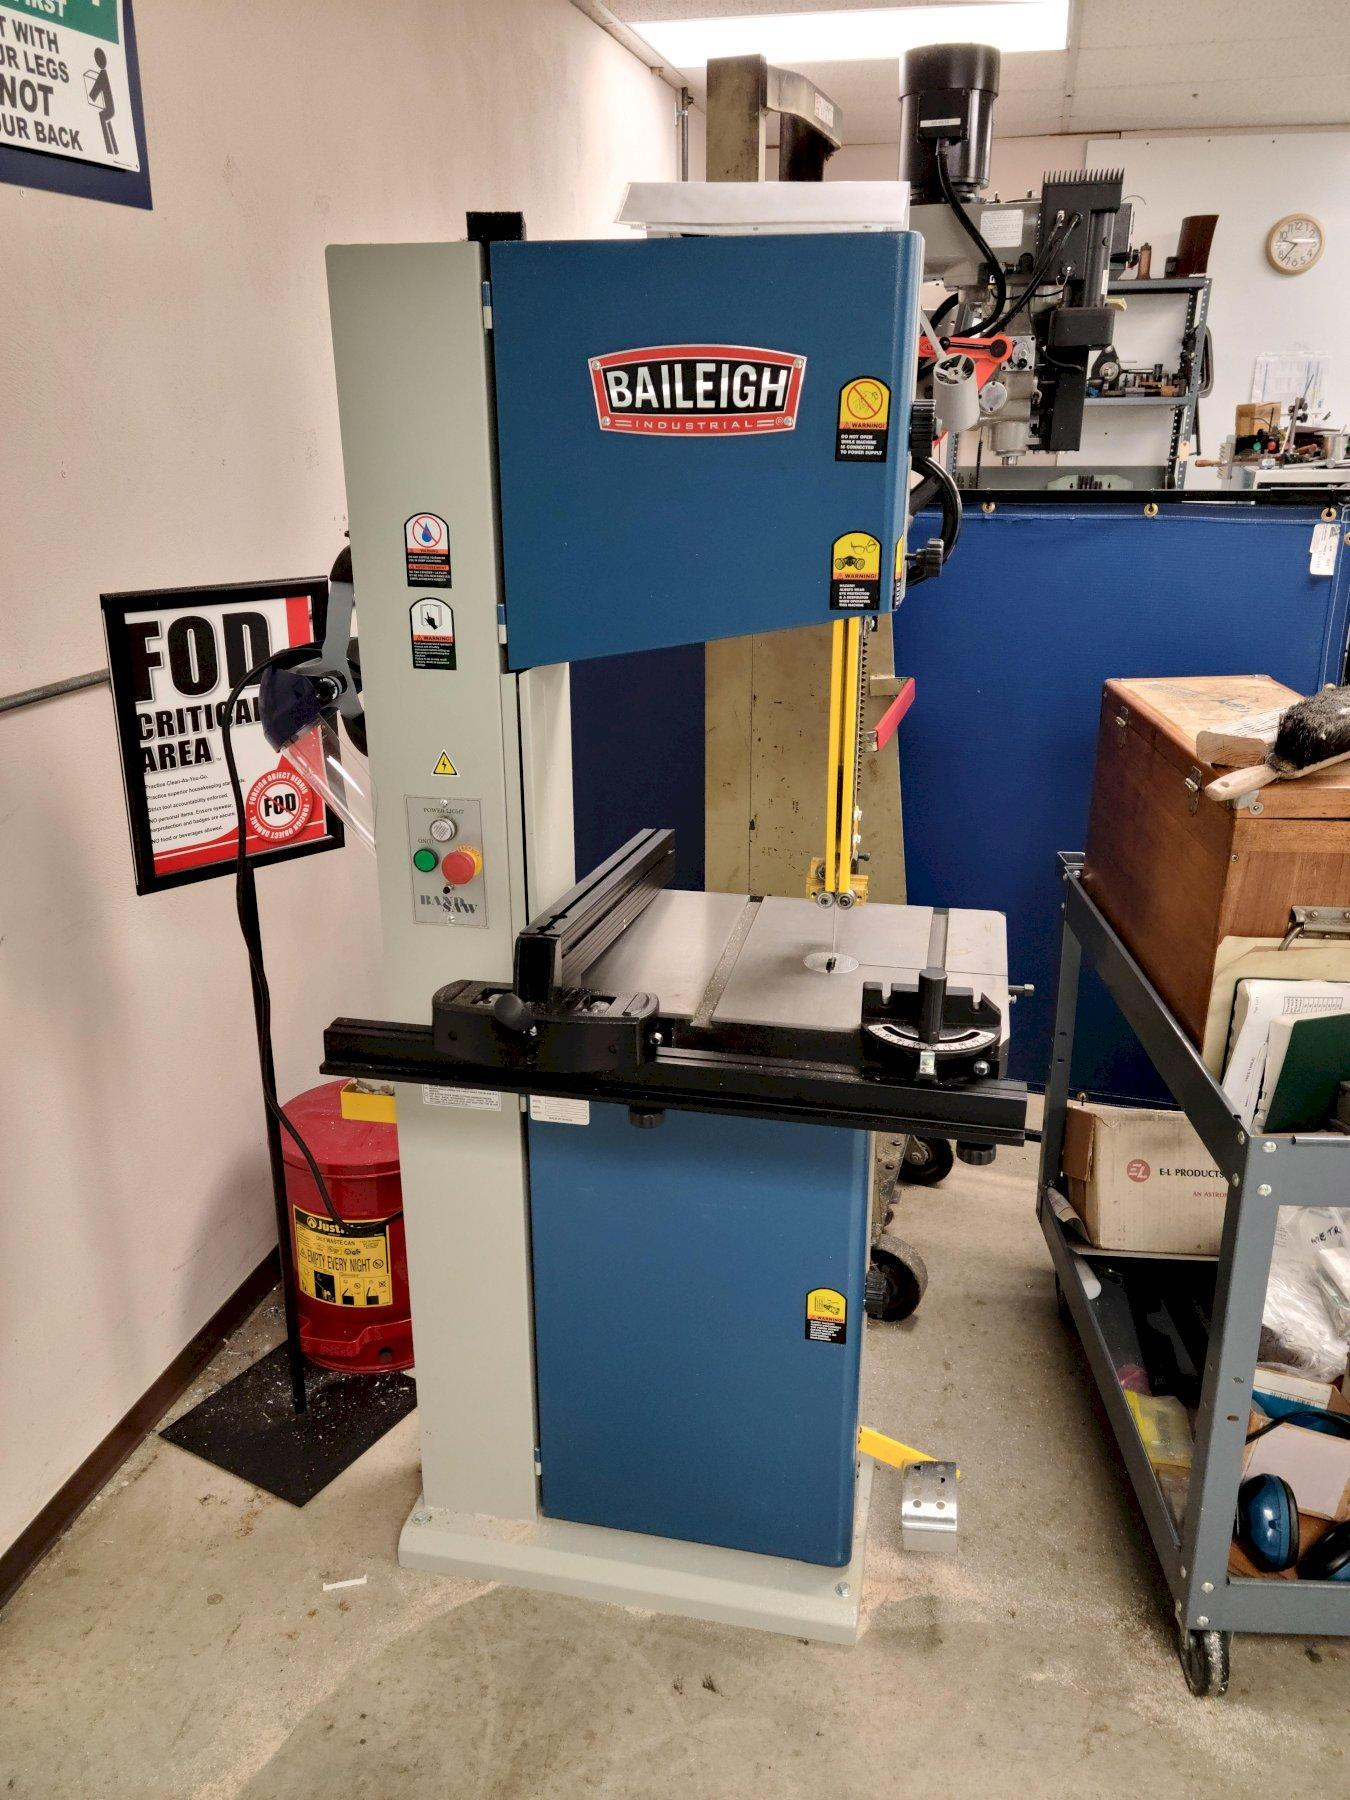 BAILIEGH INDUSTRIAL Model WBS-14-S Wood Cutting Vertical Band Saw, S/N 180851, New 2018.